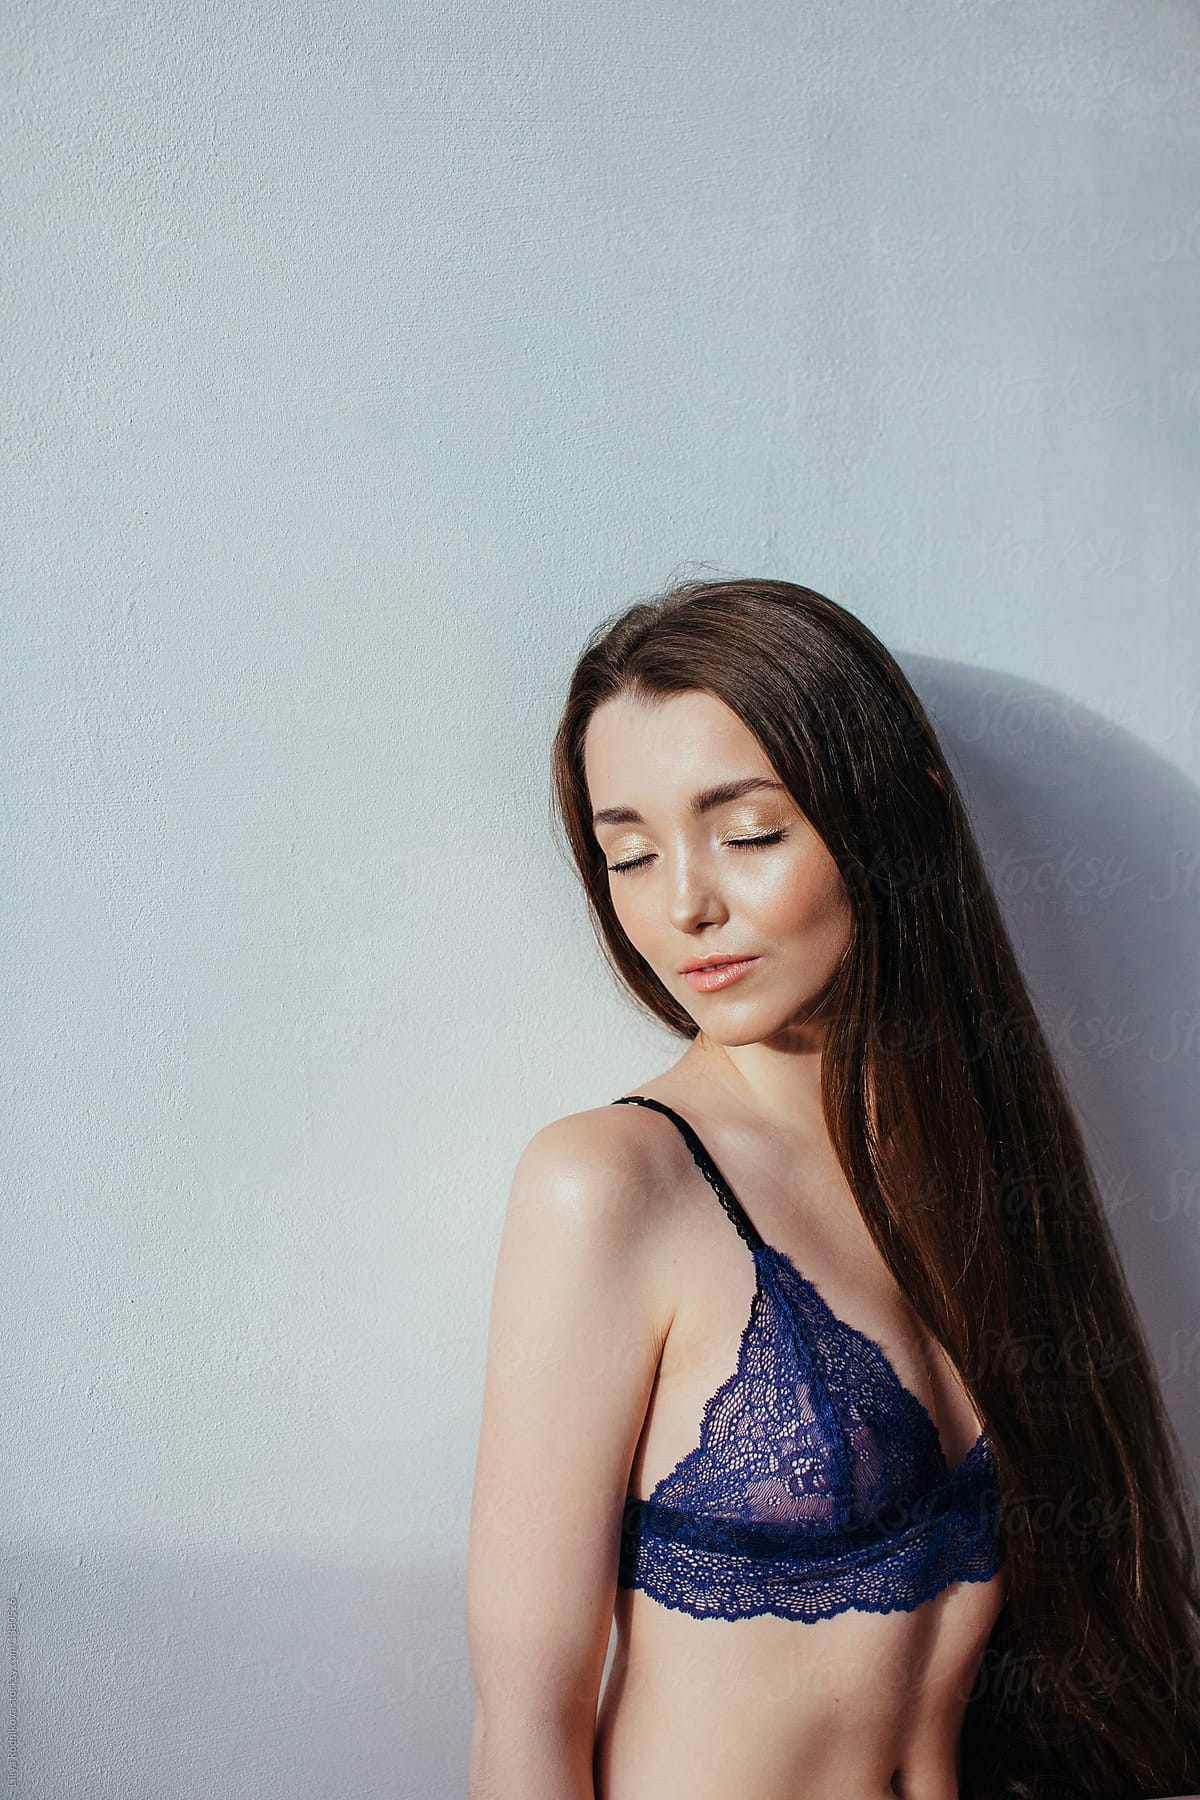 479cfebe051 Portrait of young female with long beautiful hair and closed eyes wearing  lace blue bra